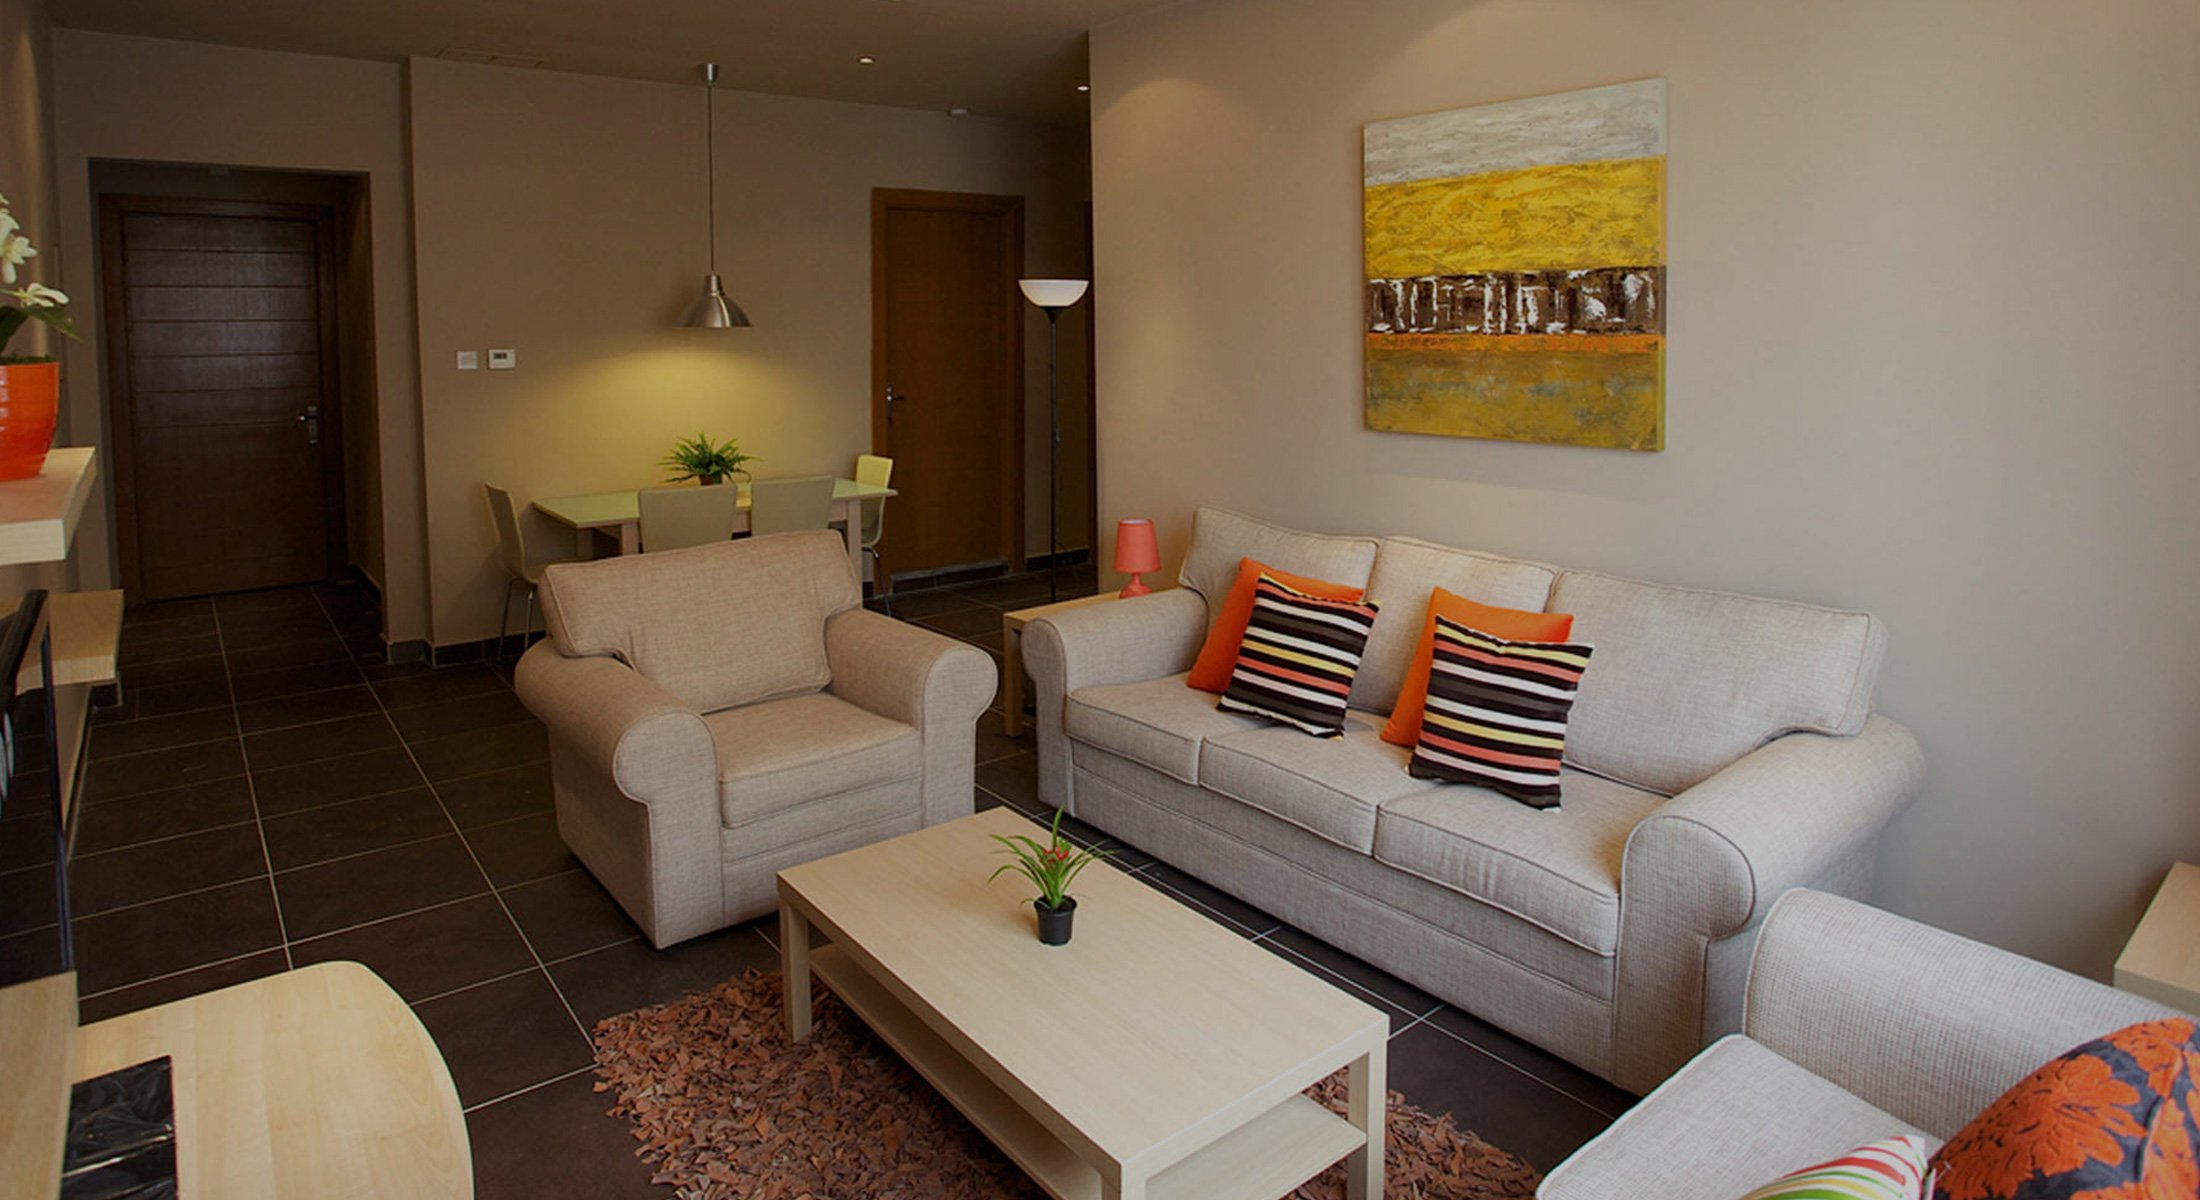 Apartment for rent in kuwait